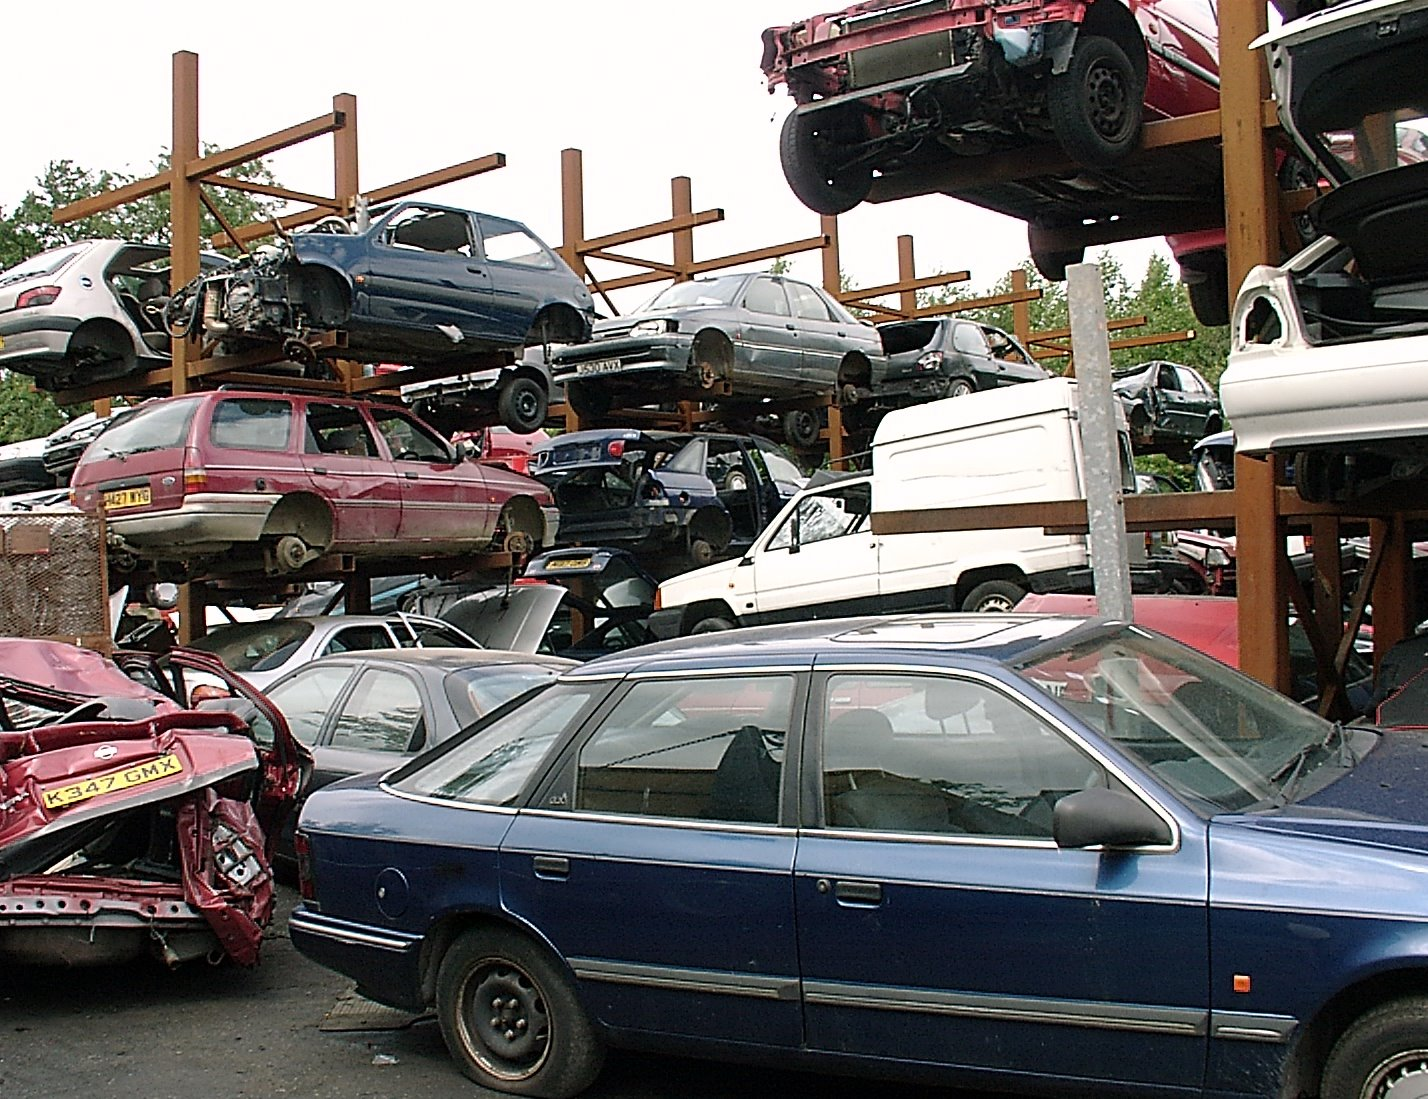 5 Safety Items to Take Along to an Auto Wrecker - JT Chicago Junk ...